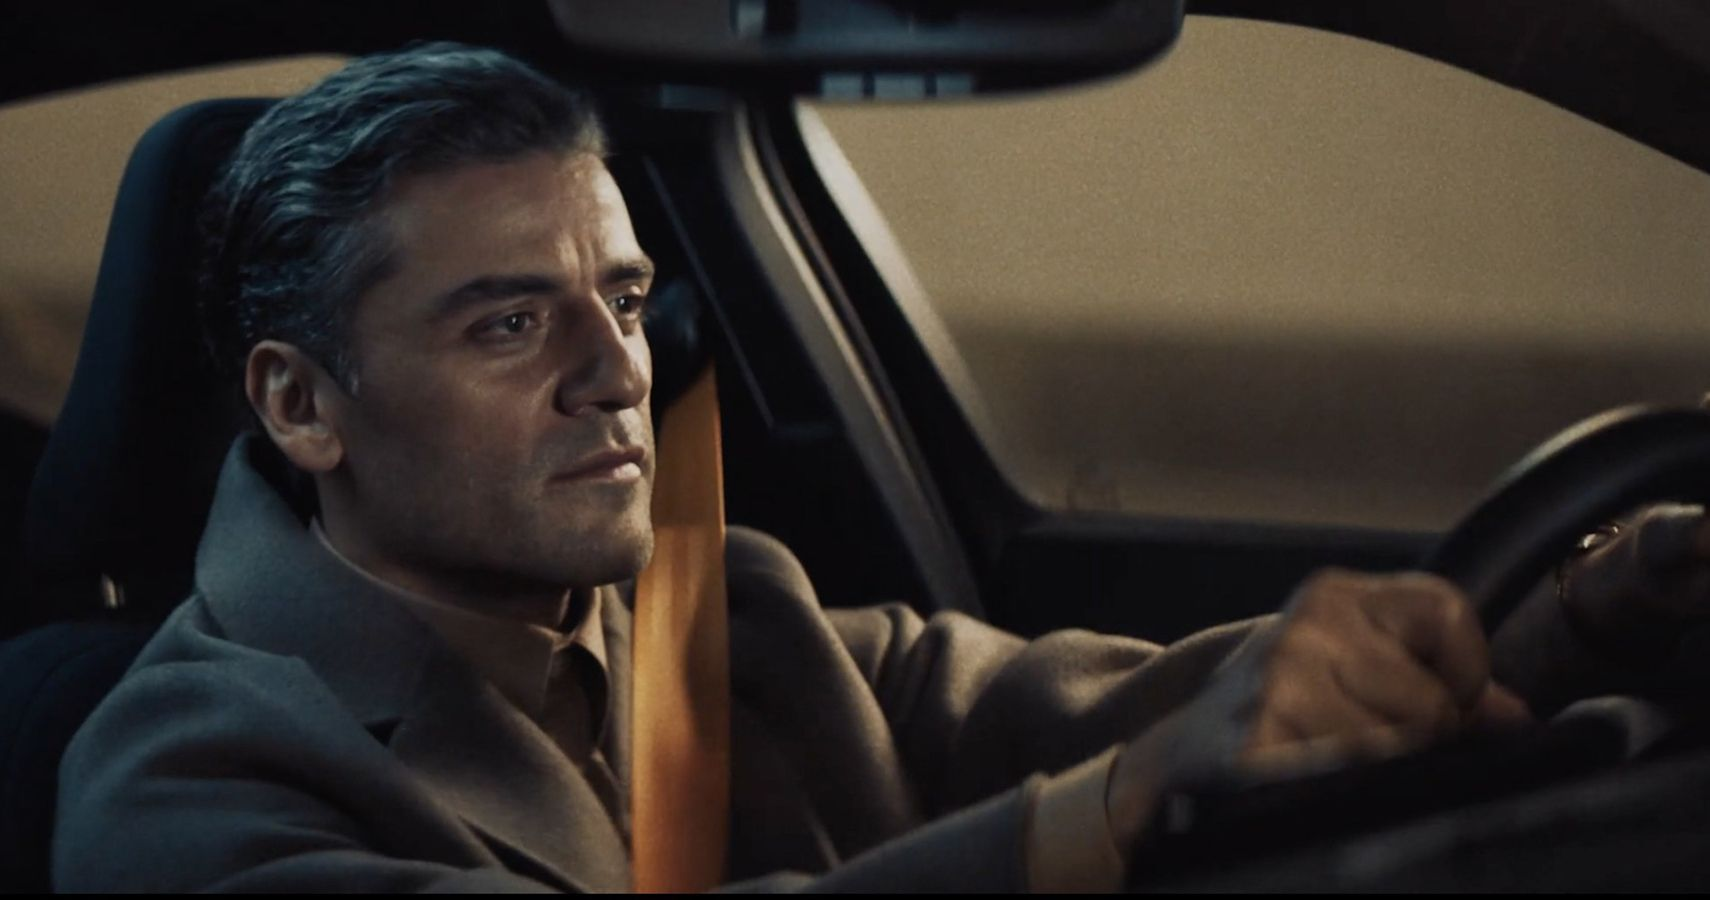 """Star Wars Actor Oscar Isaac Is Hosting Polestar's New Docuseries """"Making aNew"""""""